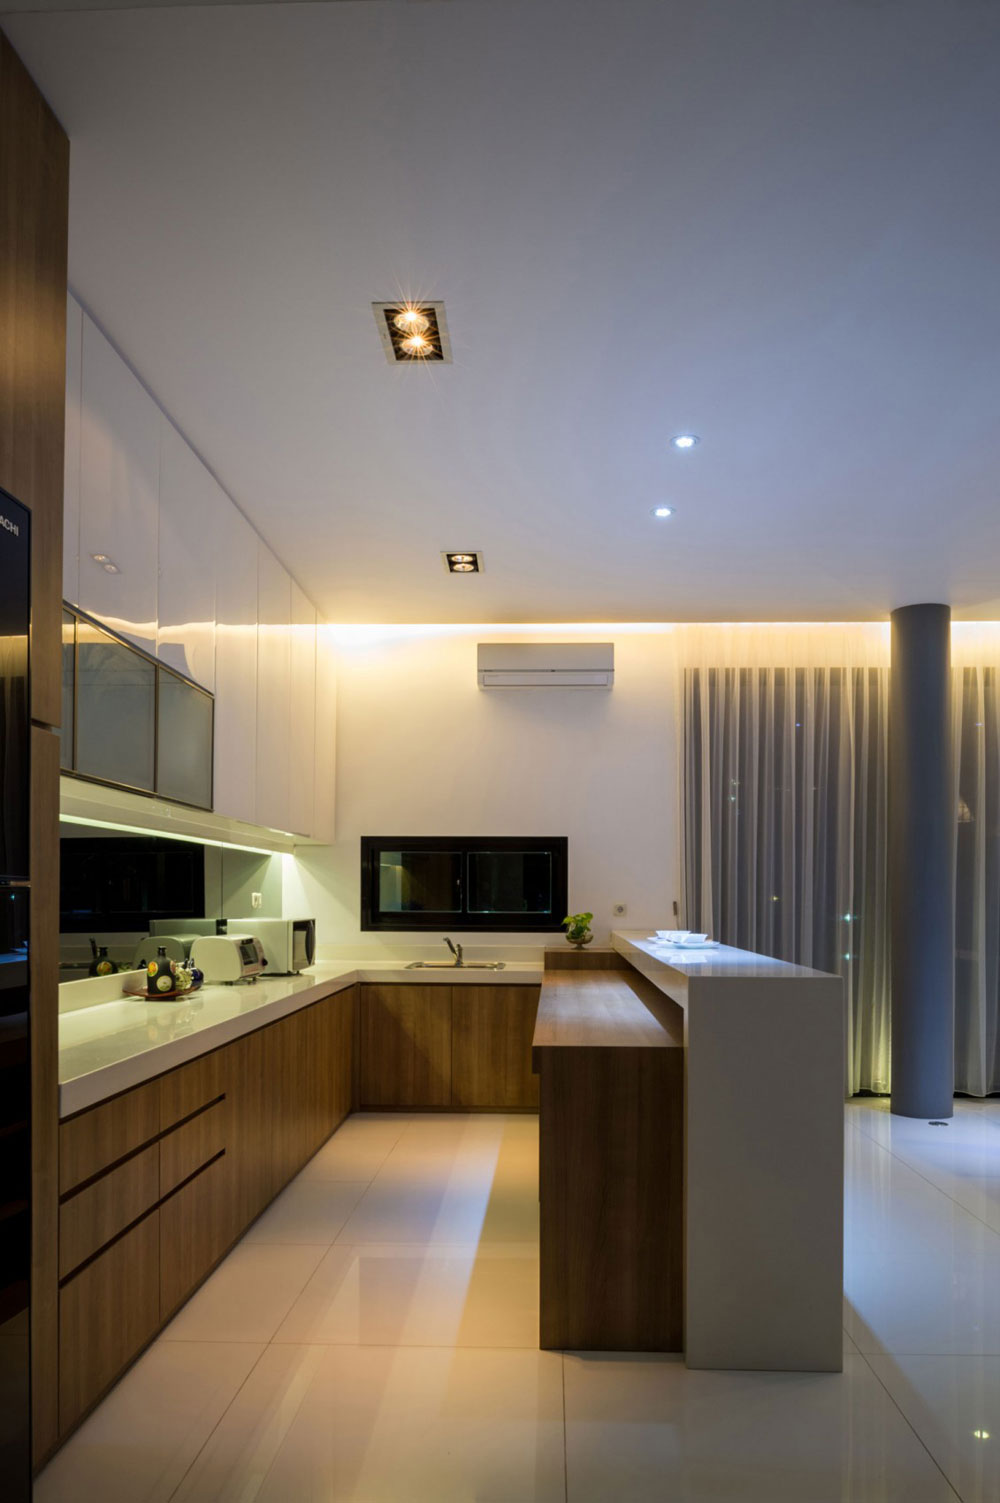 Flats Design kitchen interior design for flats to create the perfect kitchen